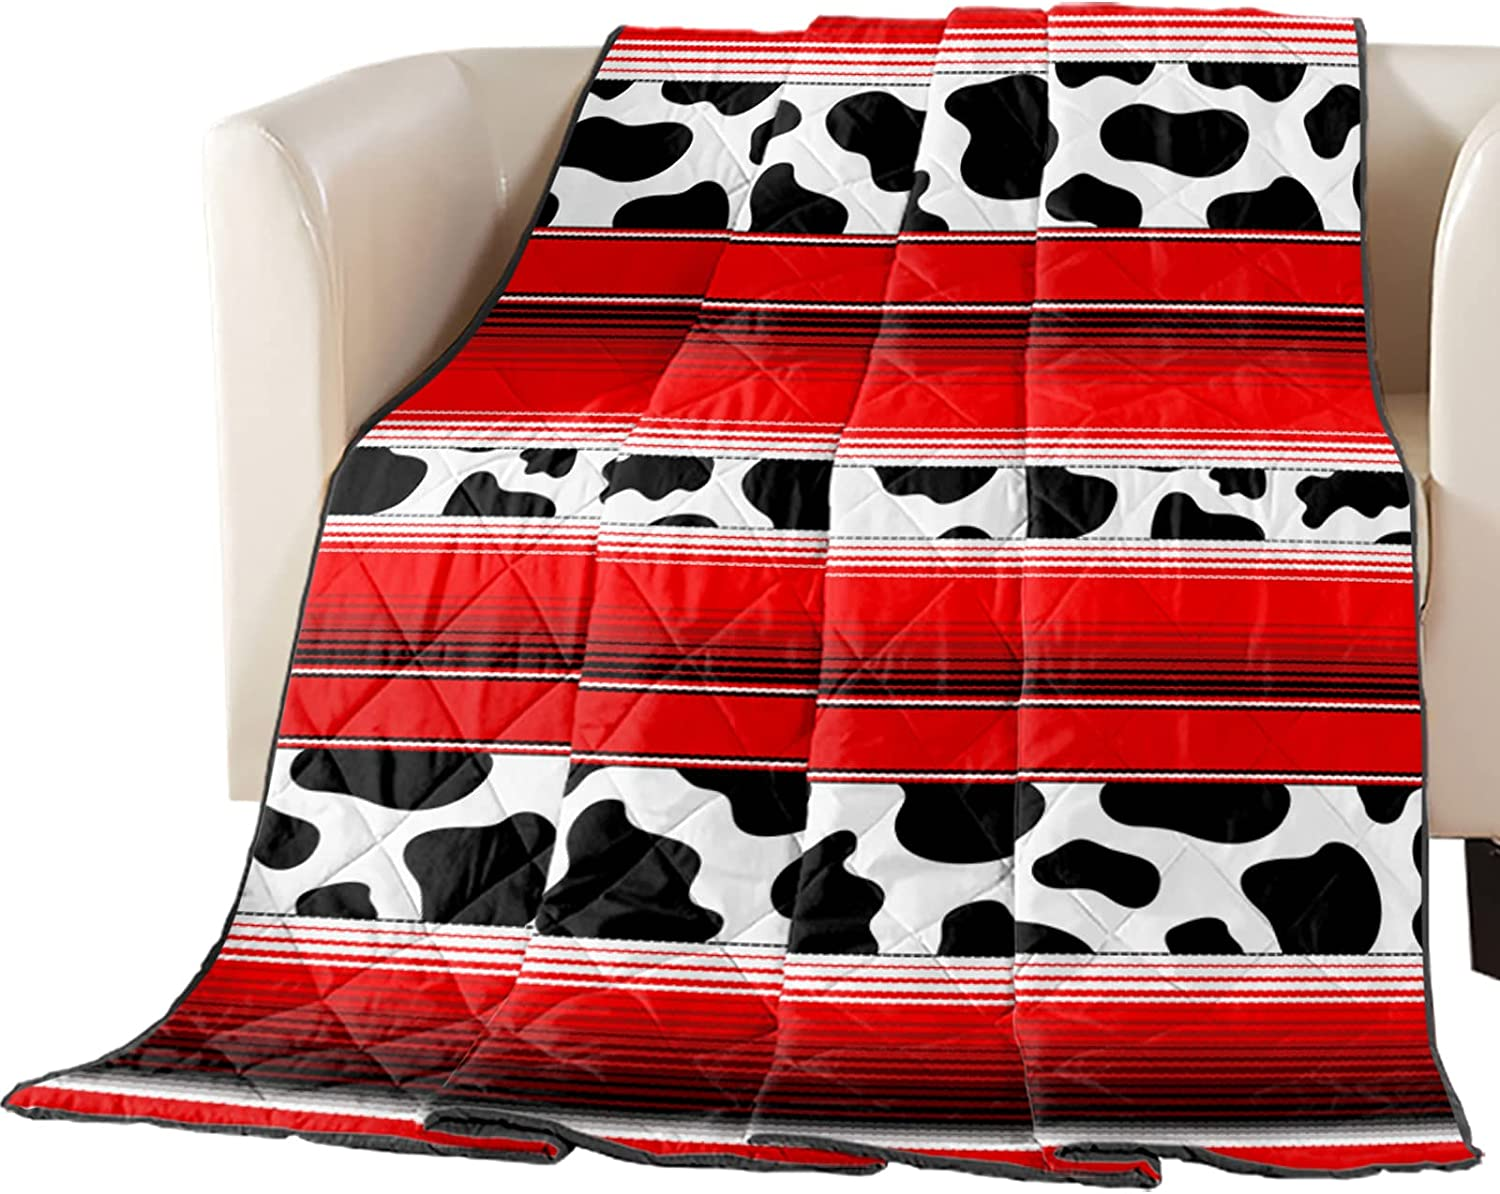 Max 50% OFF Reversible Down Alternative Comforter Animals Milk Abstract Cow Max 75% OFF